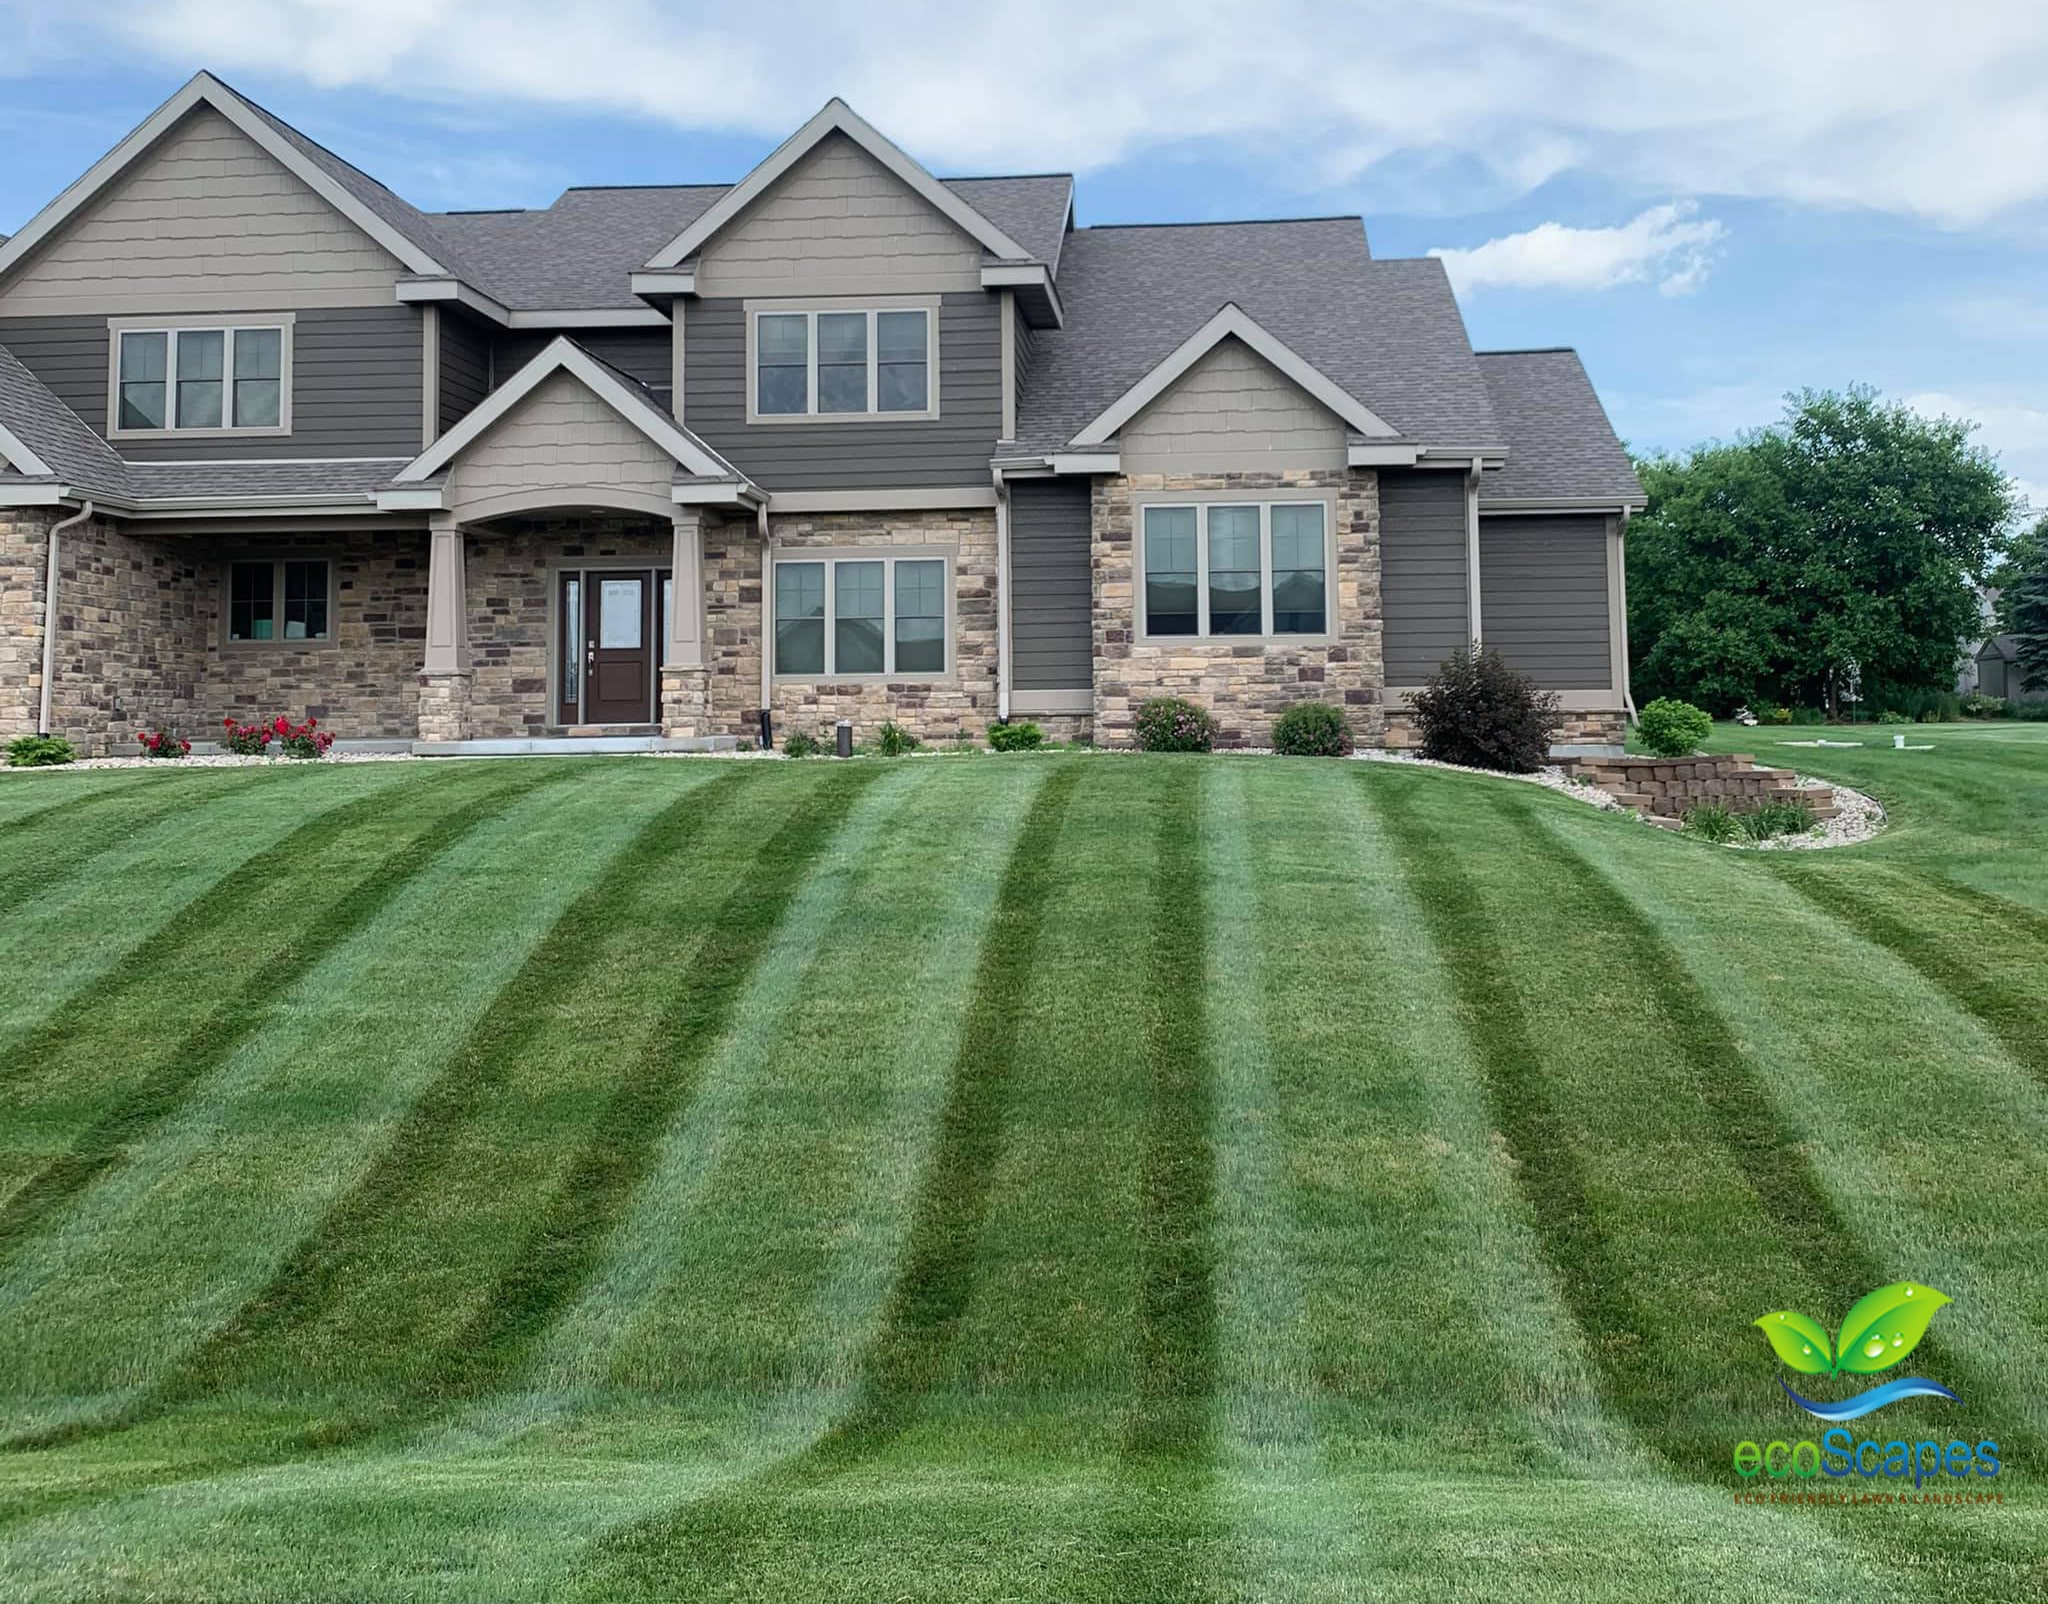 5 Star Lawn Care Services in Gretna by EcoScapes